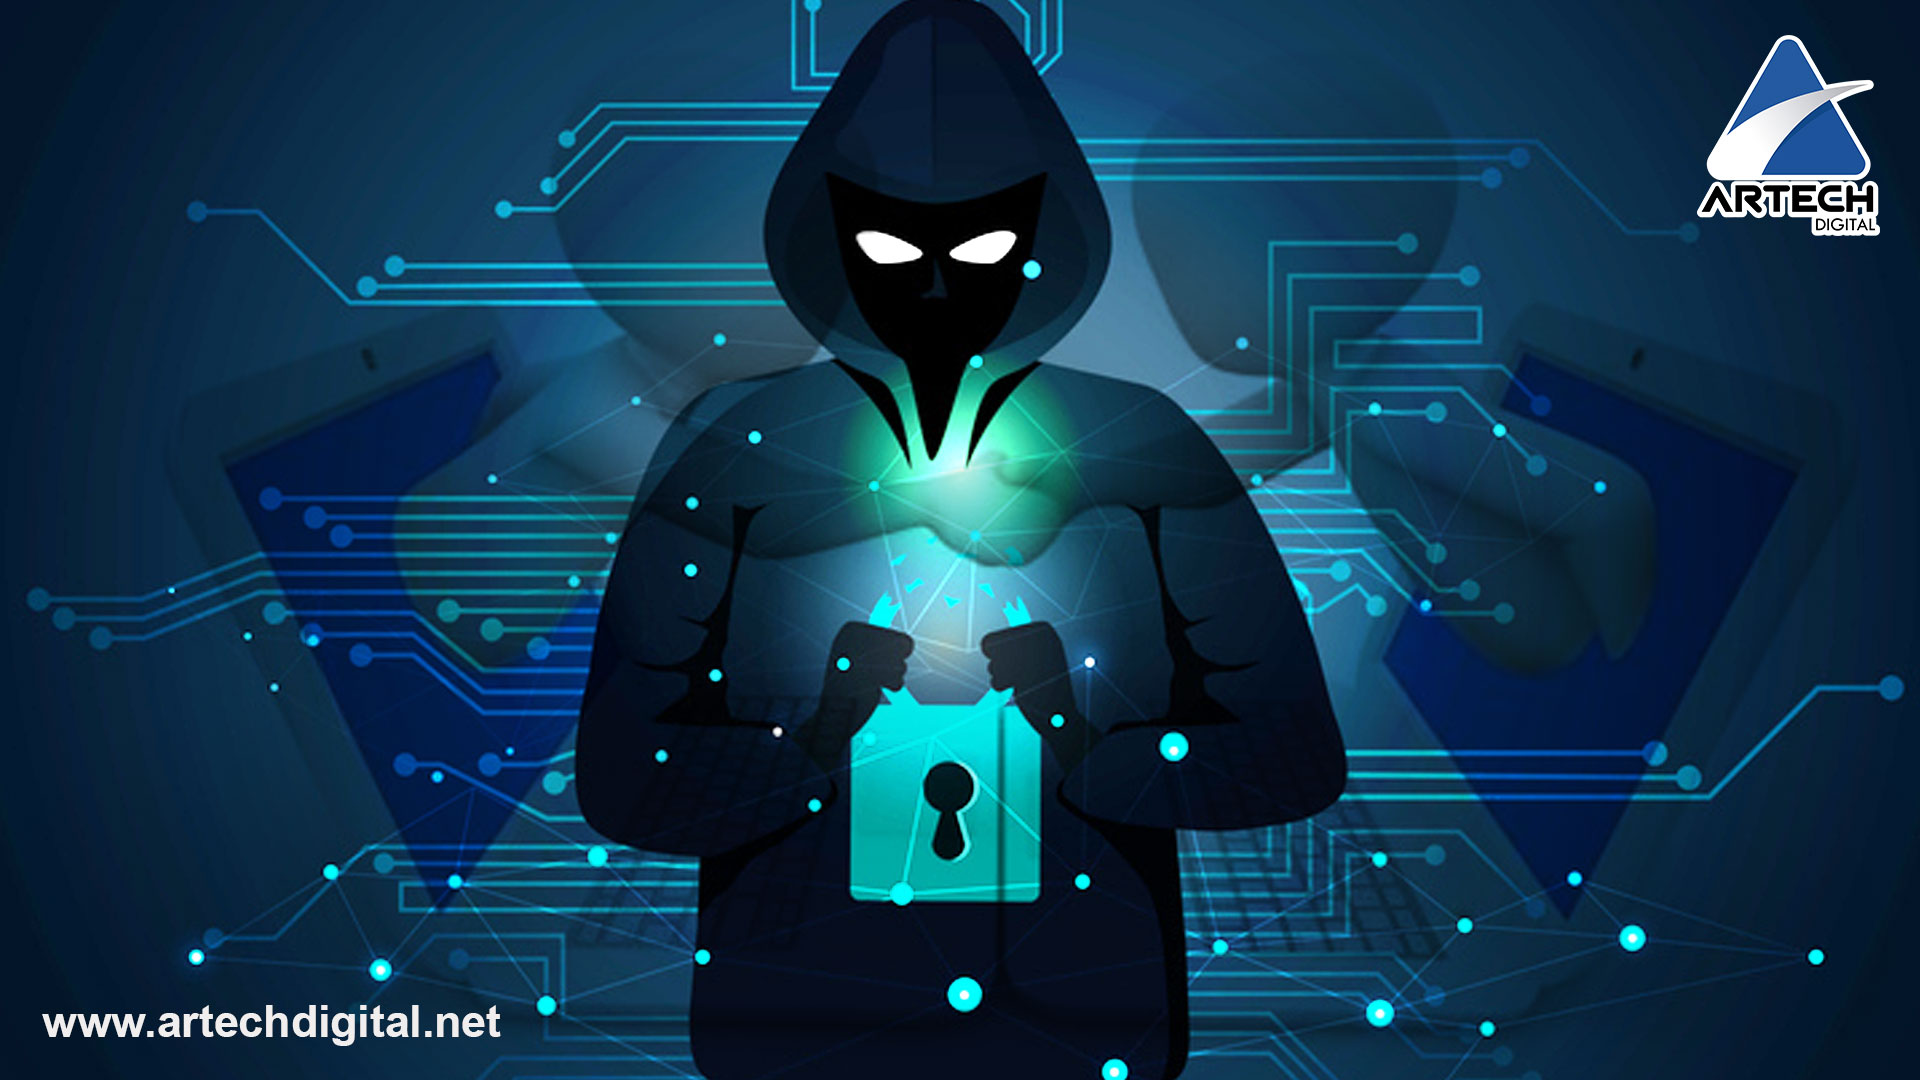 Online fraud, desperation, love and identity theft